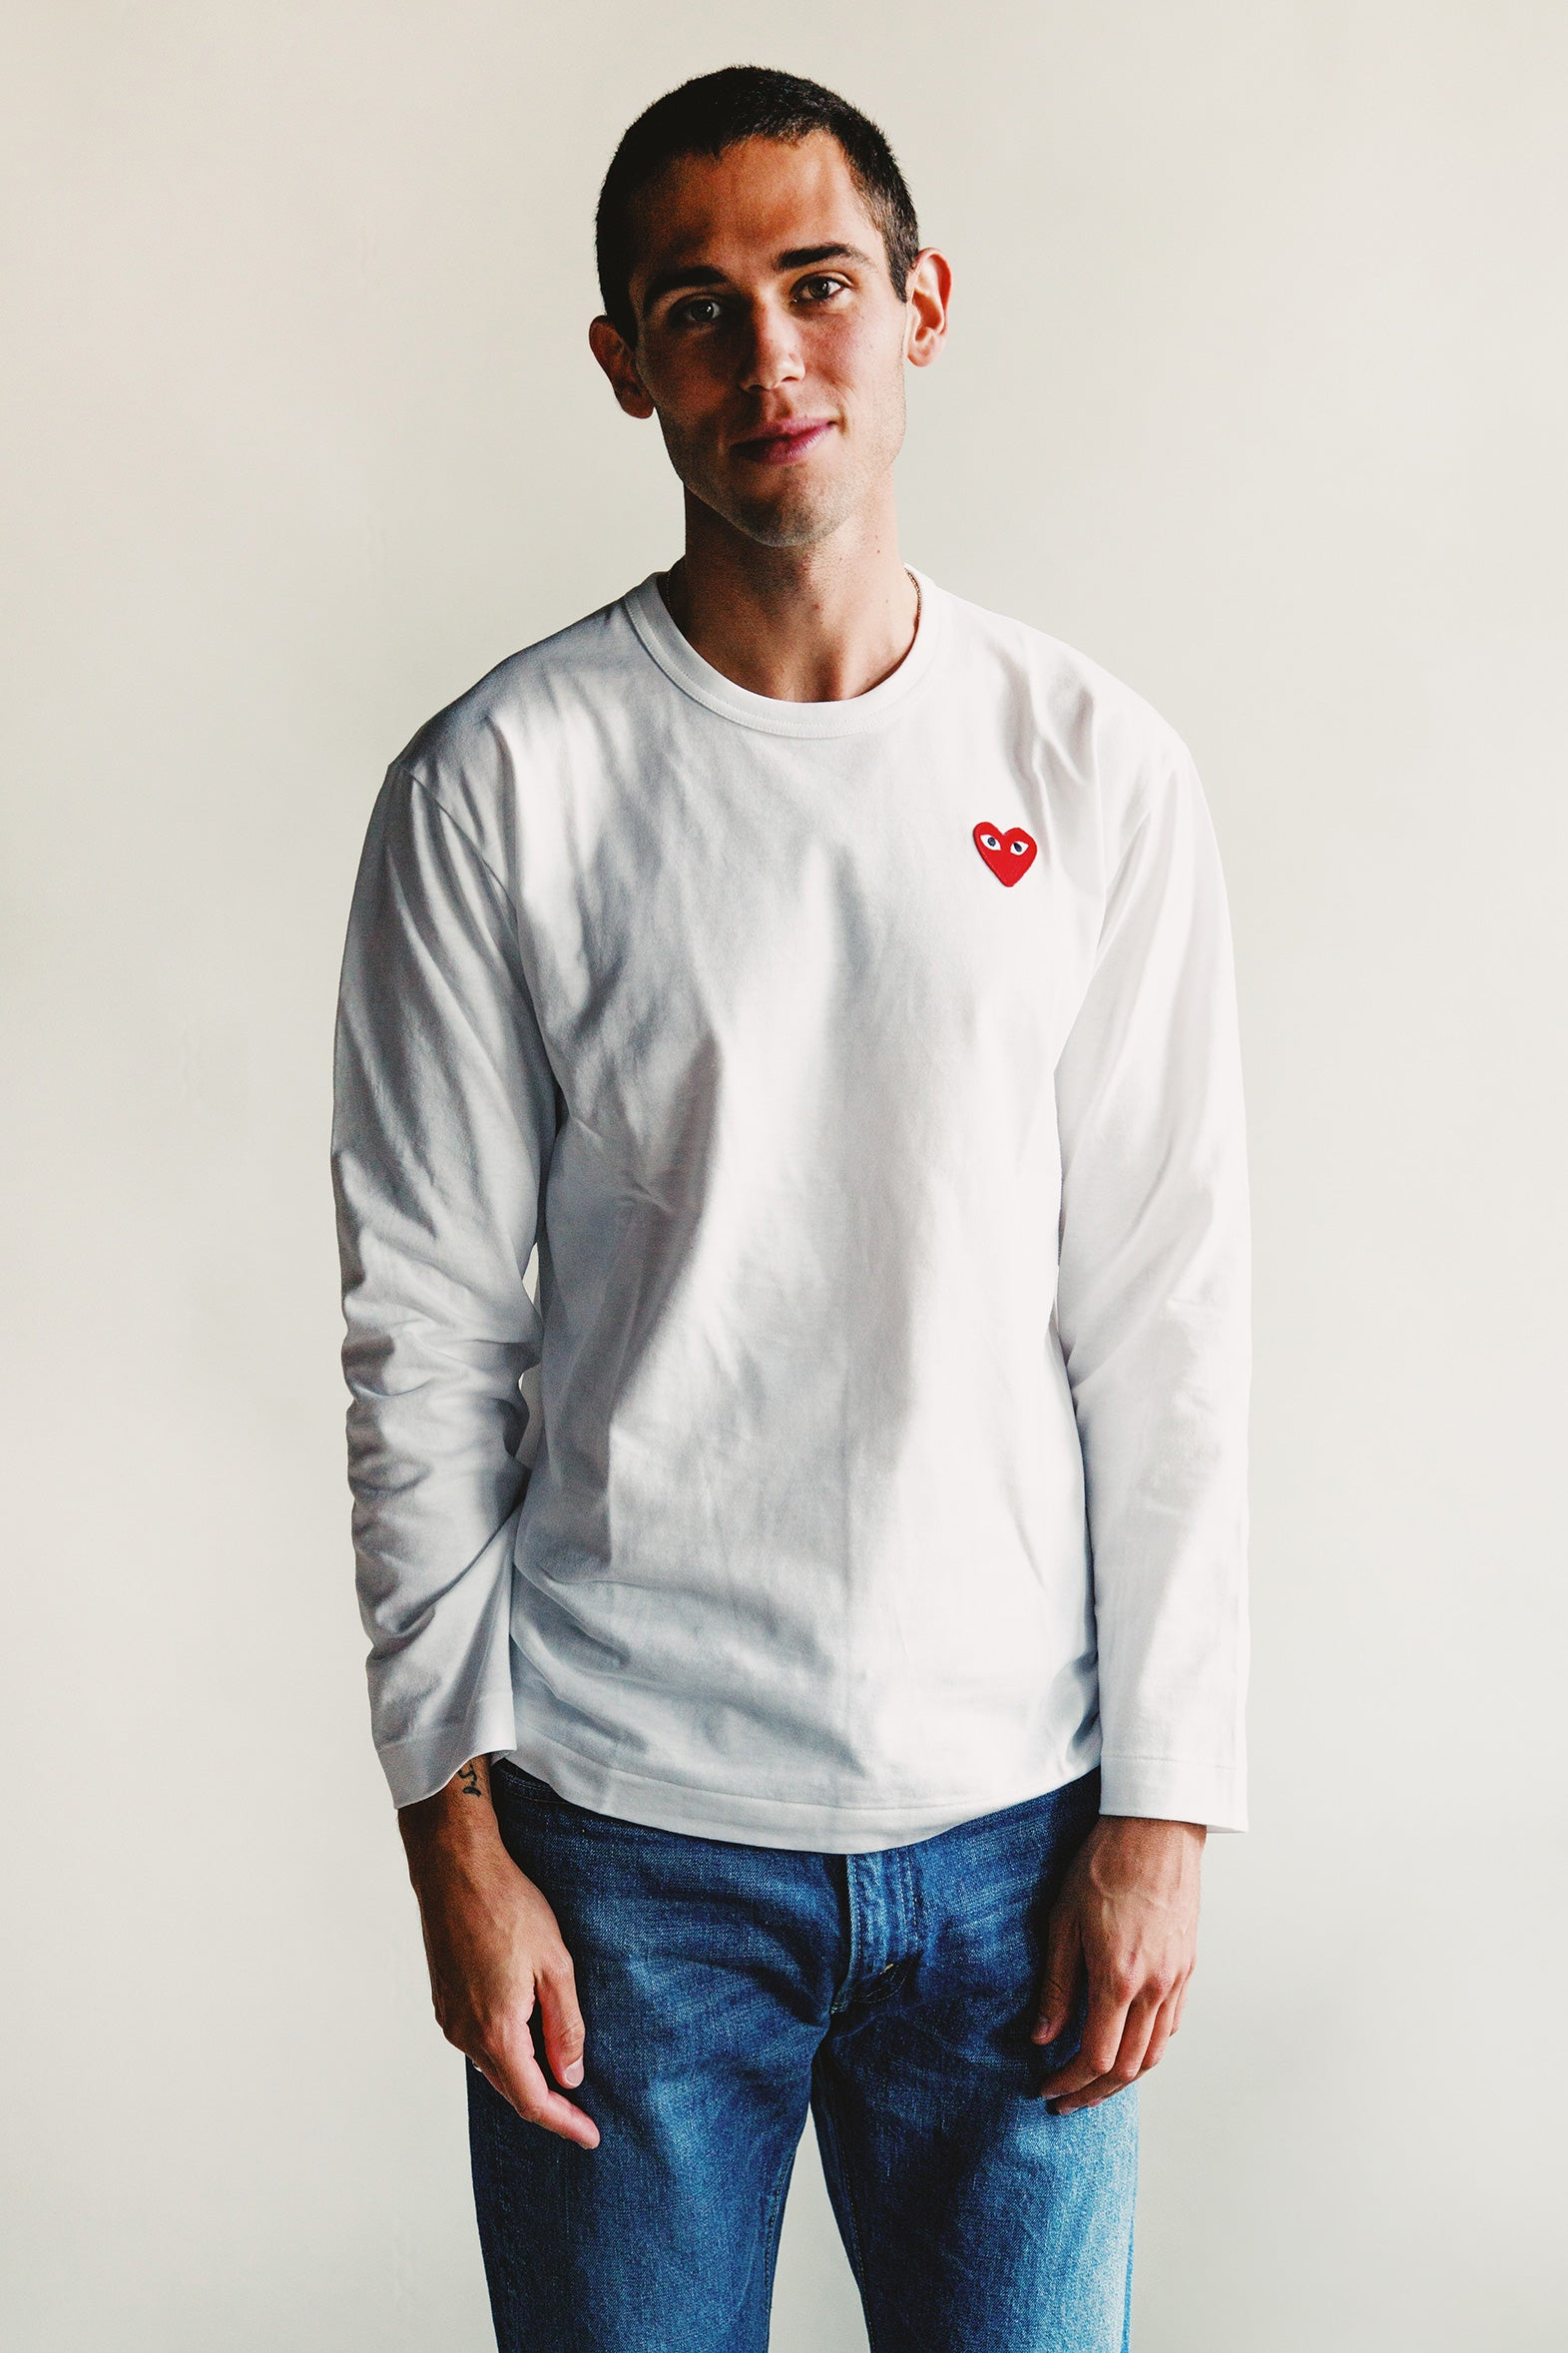 Comme des Garçons PLAY - Red Heart Long Sleeve T-Shirt - White - Canoe Club